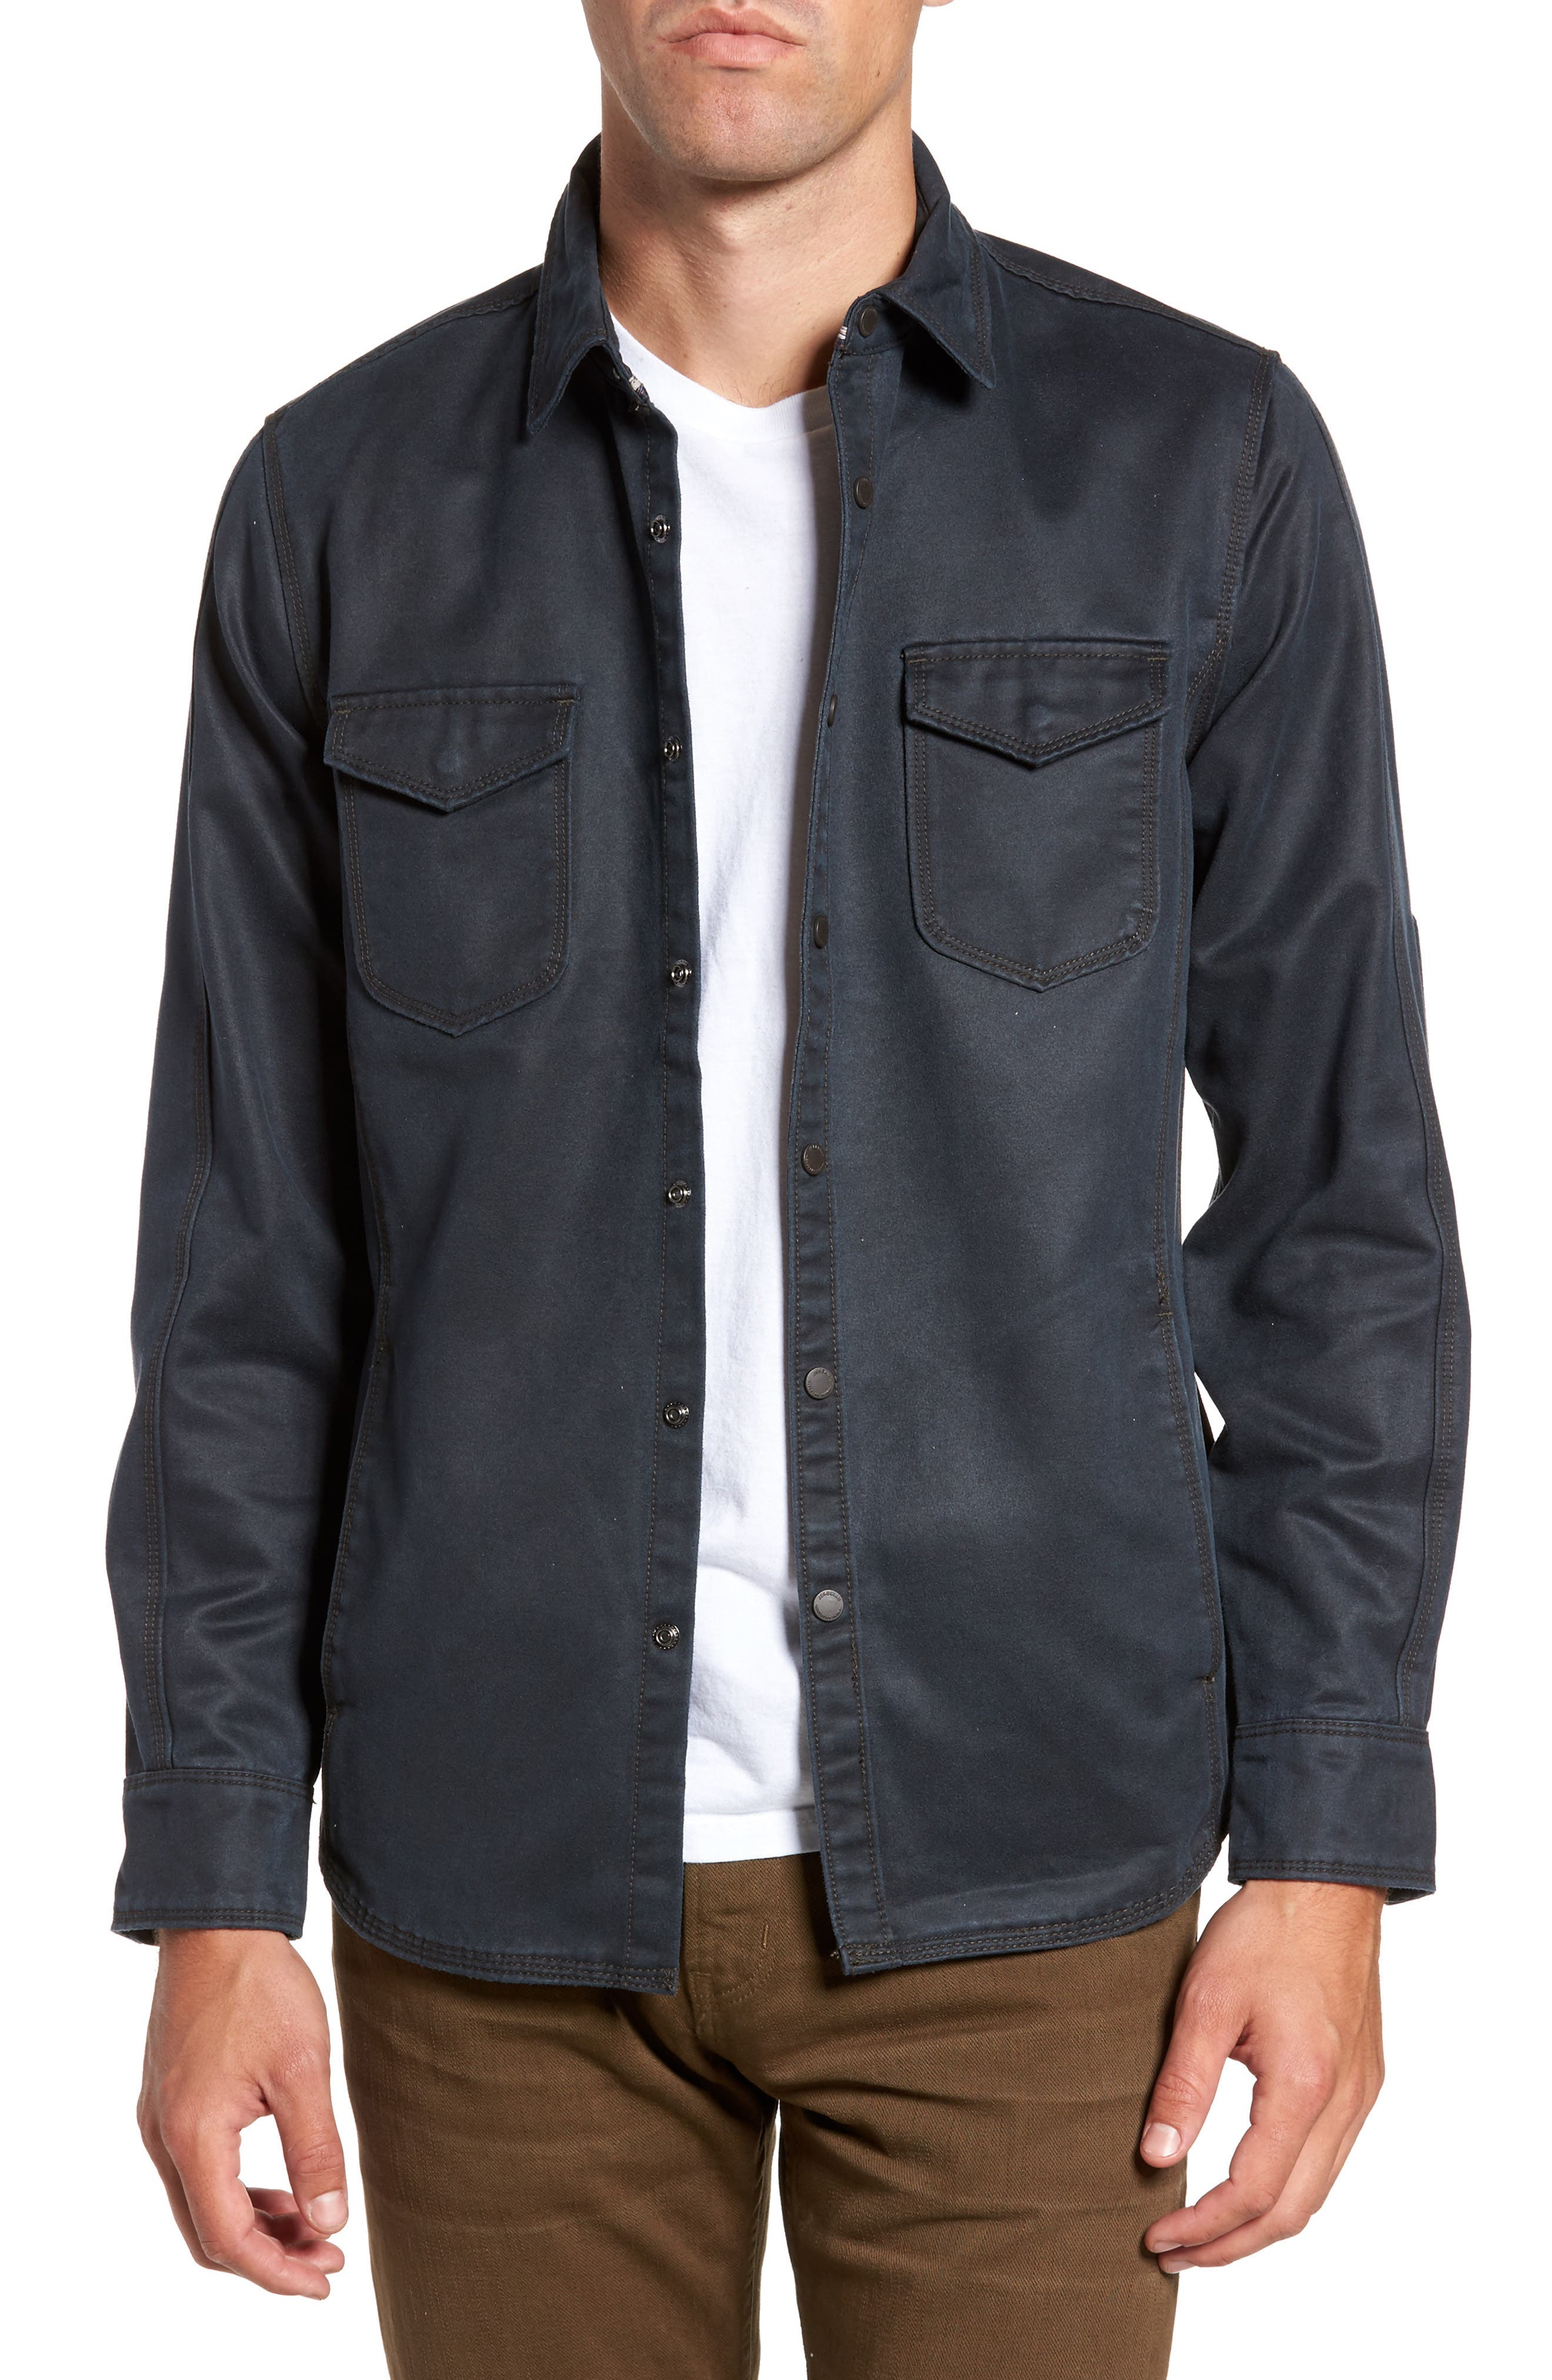 'Colt' Regular Fit Sueded Cotton Blend Shirt Jacket,                             Main thumbnail 1, color,                             INKWELL